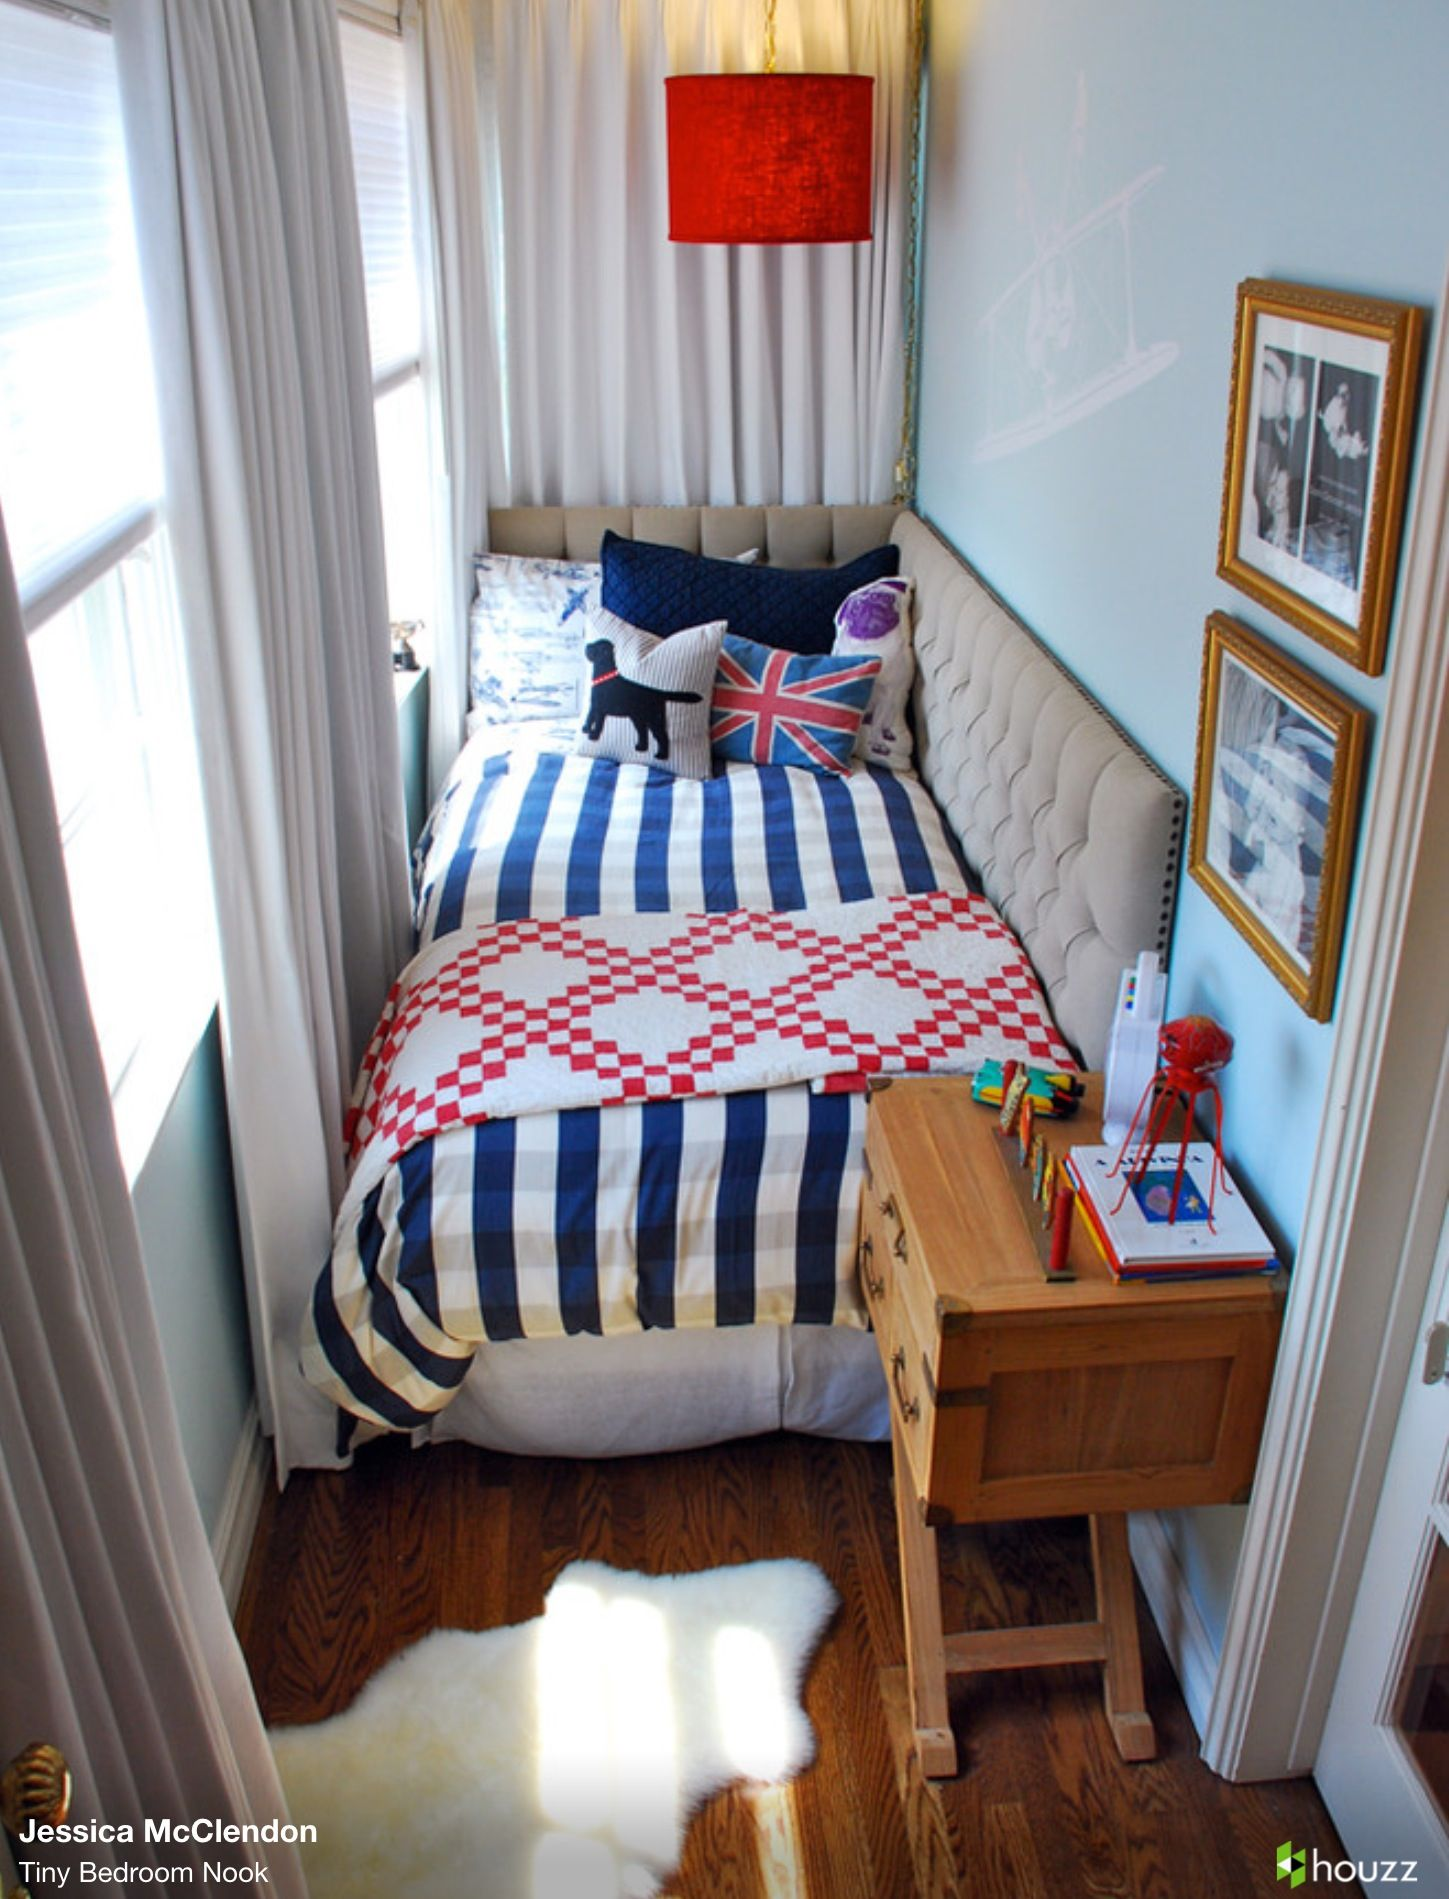 Tiny Bedroom Nook images